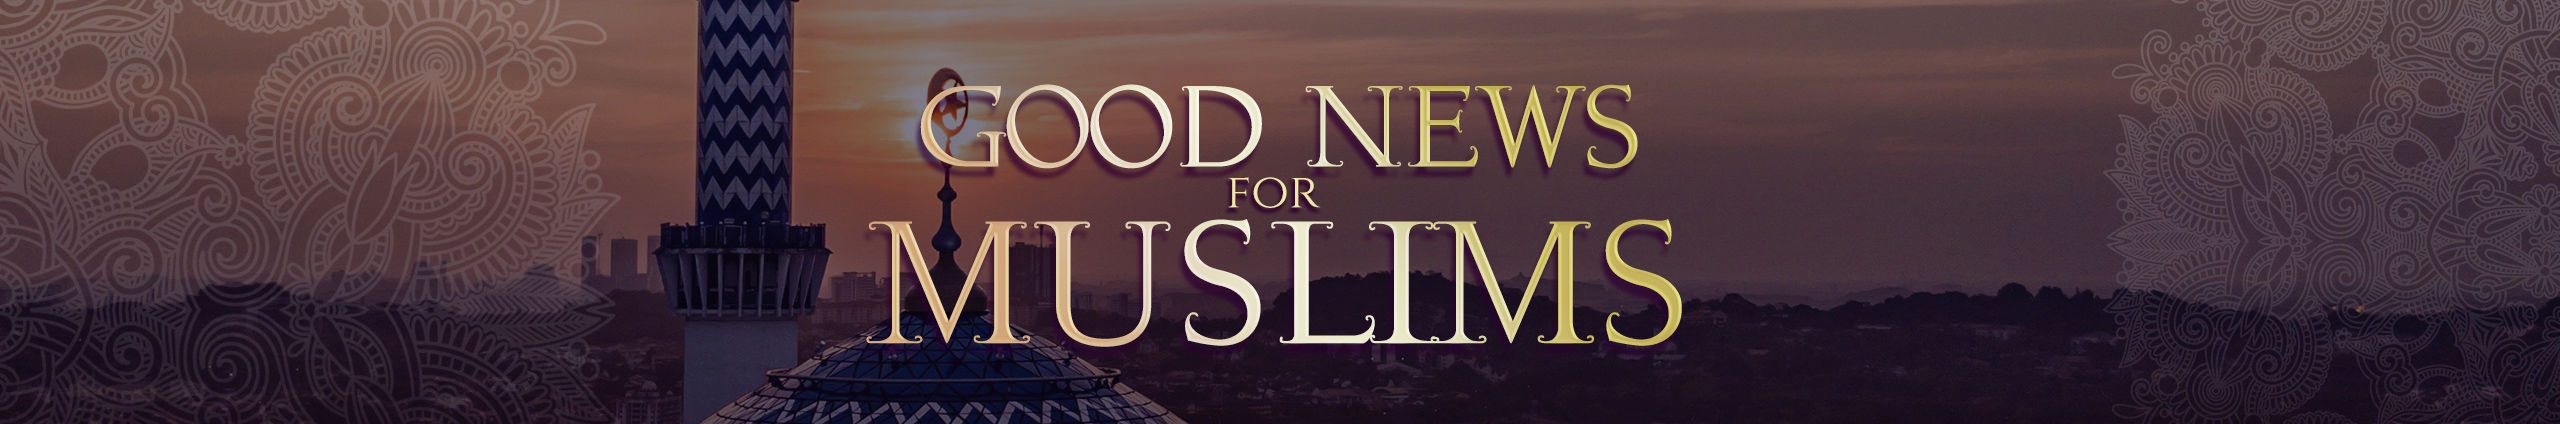 Good News for Muslims